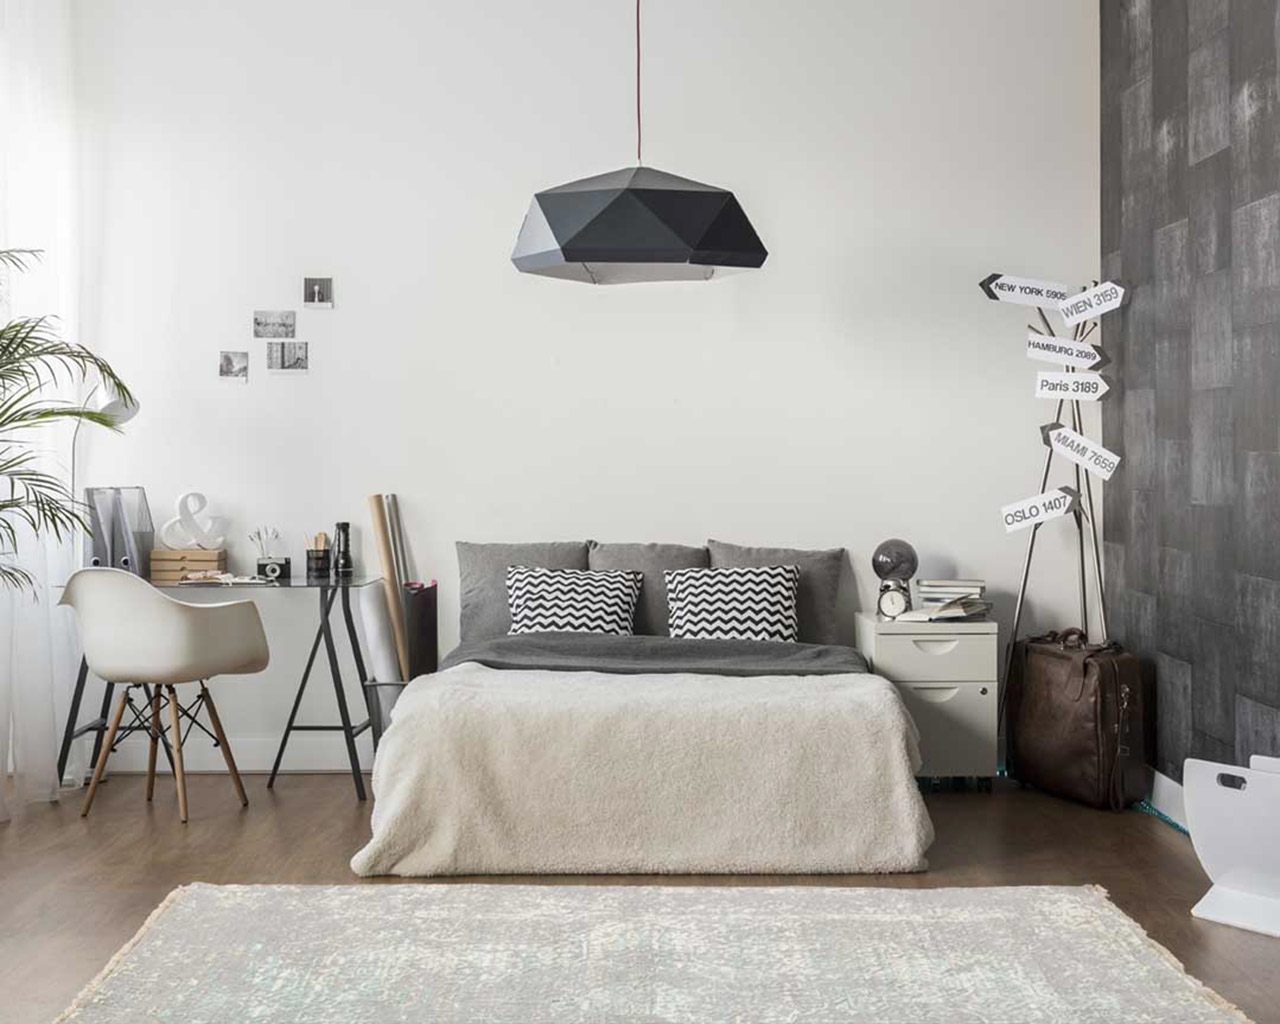 moderne main nouee tapis chambre